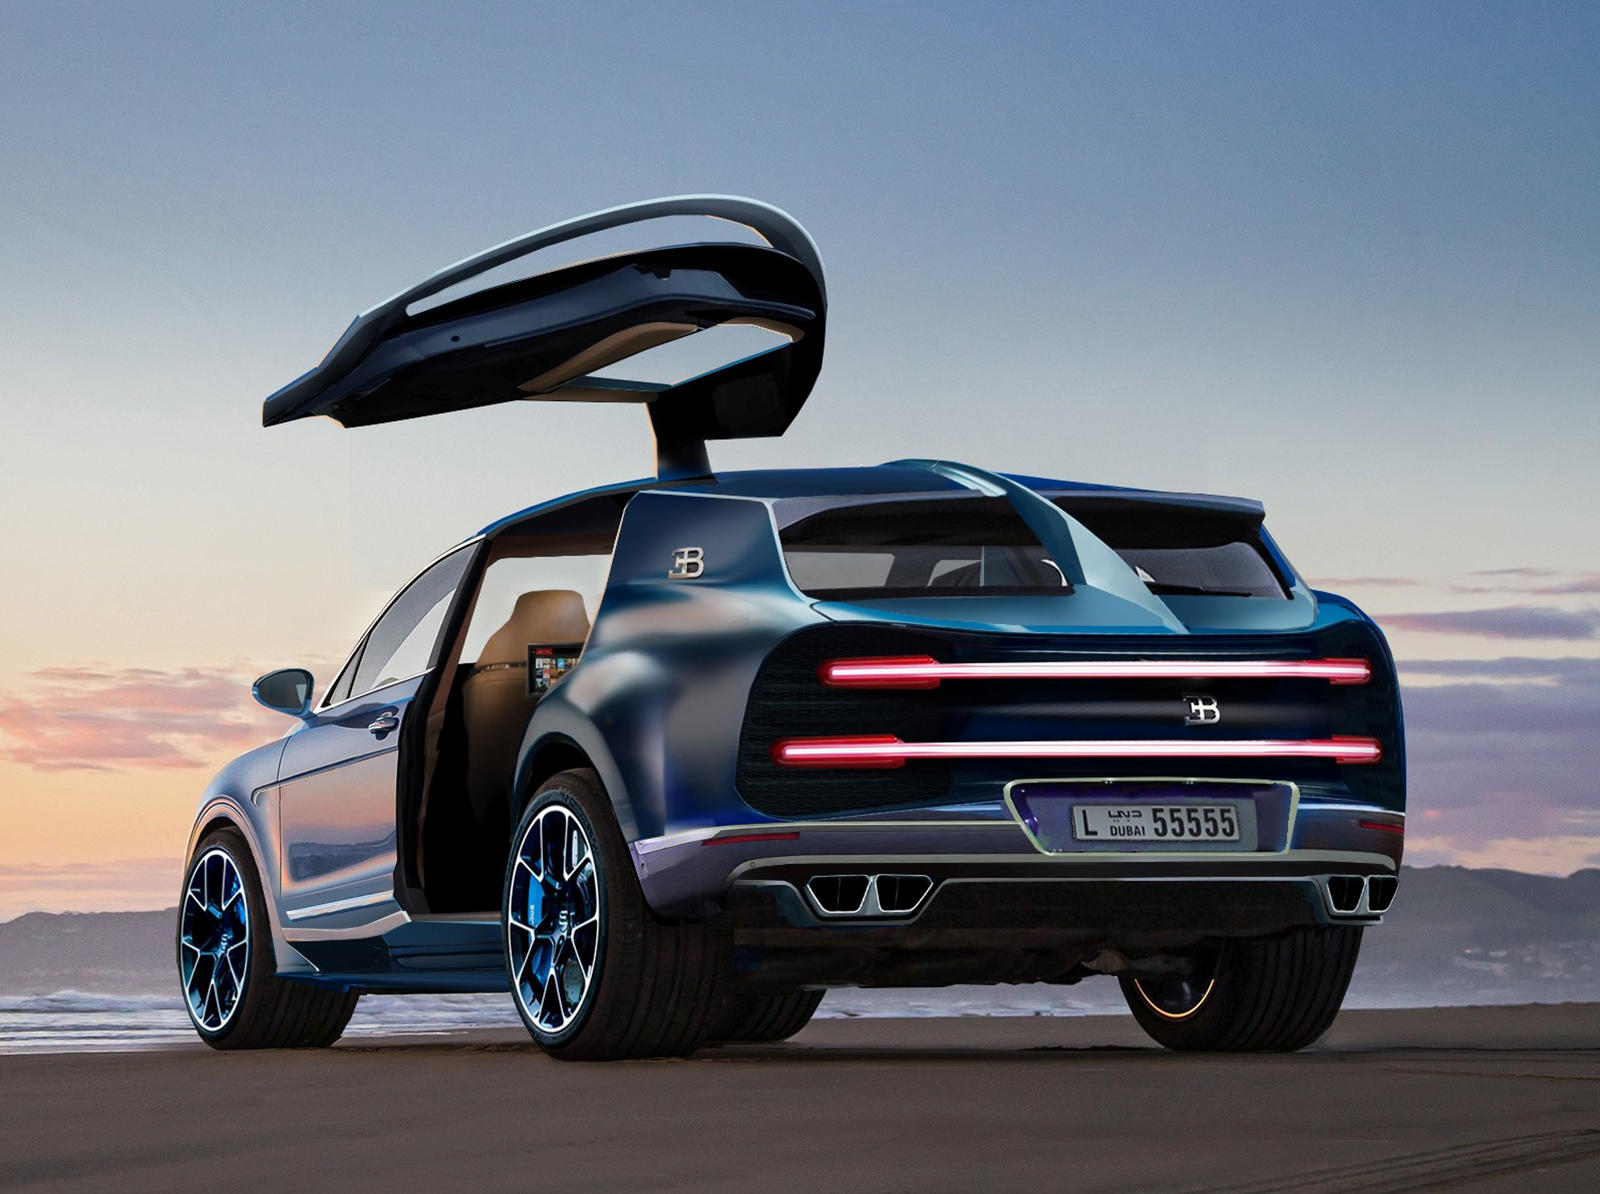 Get Ready For A Hyper Suv Based On The Bugatti Chiron Carbuzz